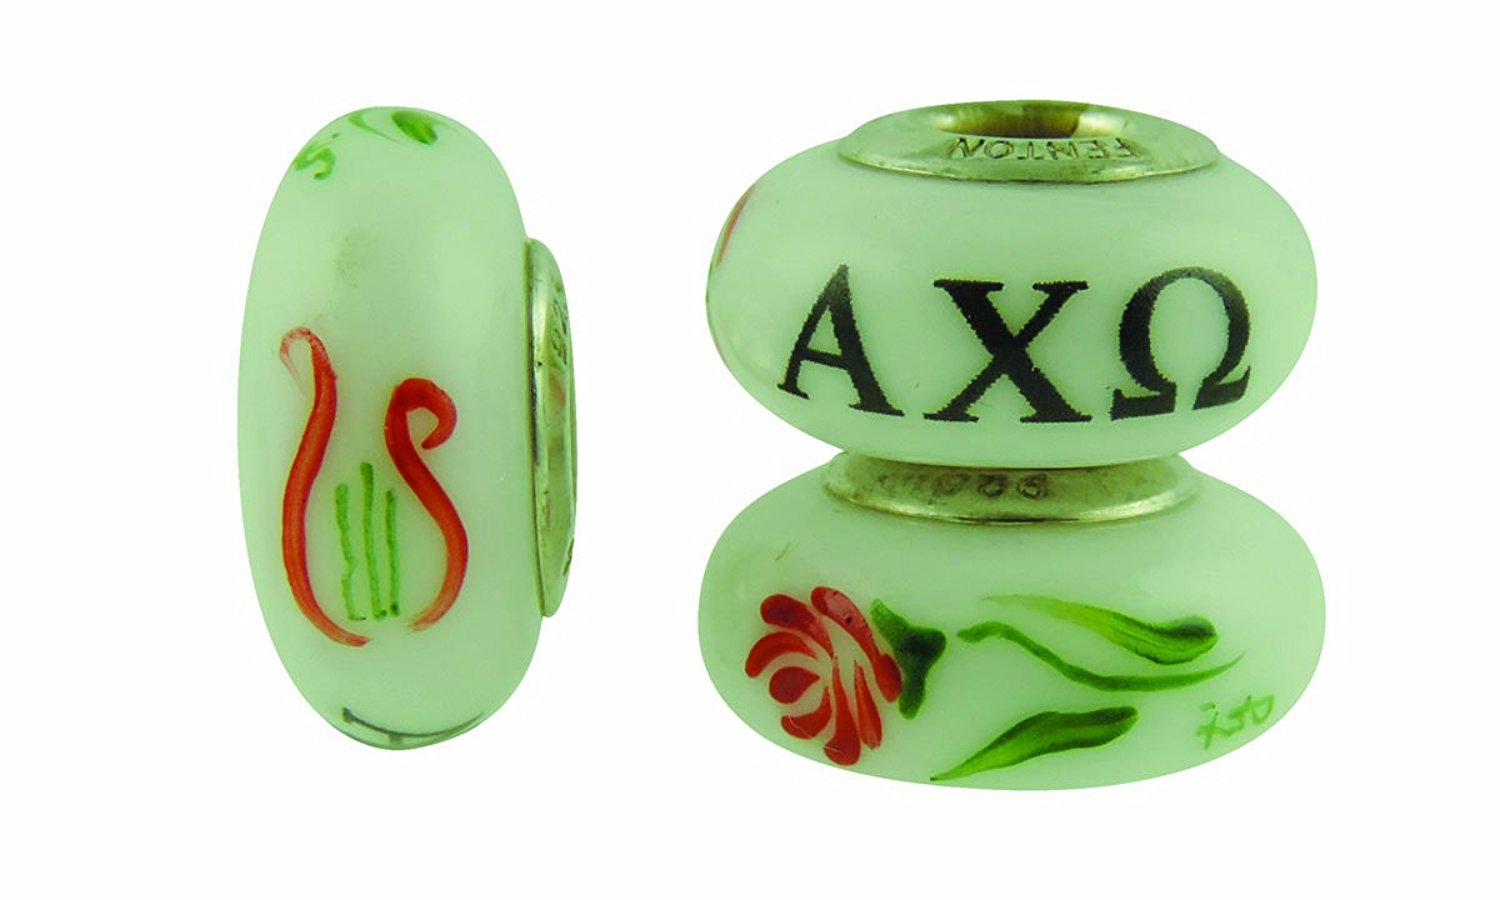 Alpha Chi Omega Hand Painted Fenton Glass Bead Fits Most European Style Charm Bracelets